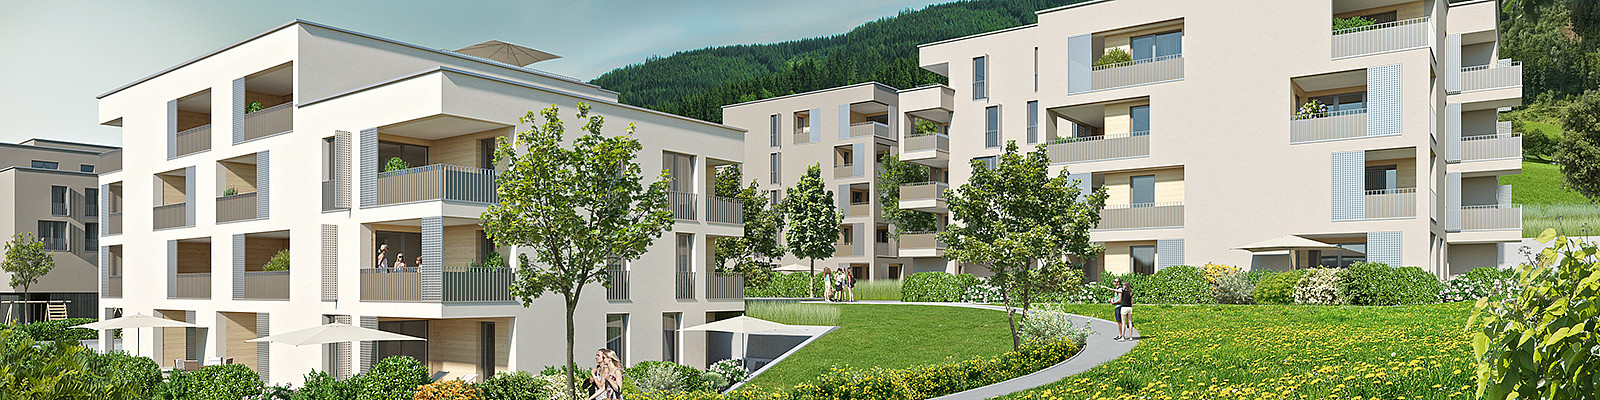 Immobilien in Zell am See